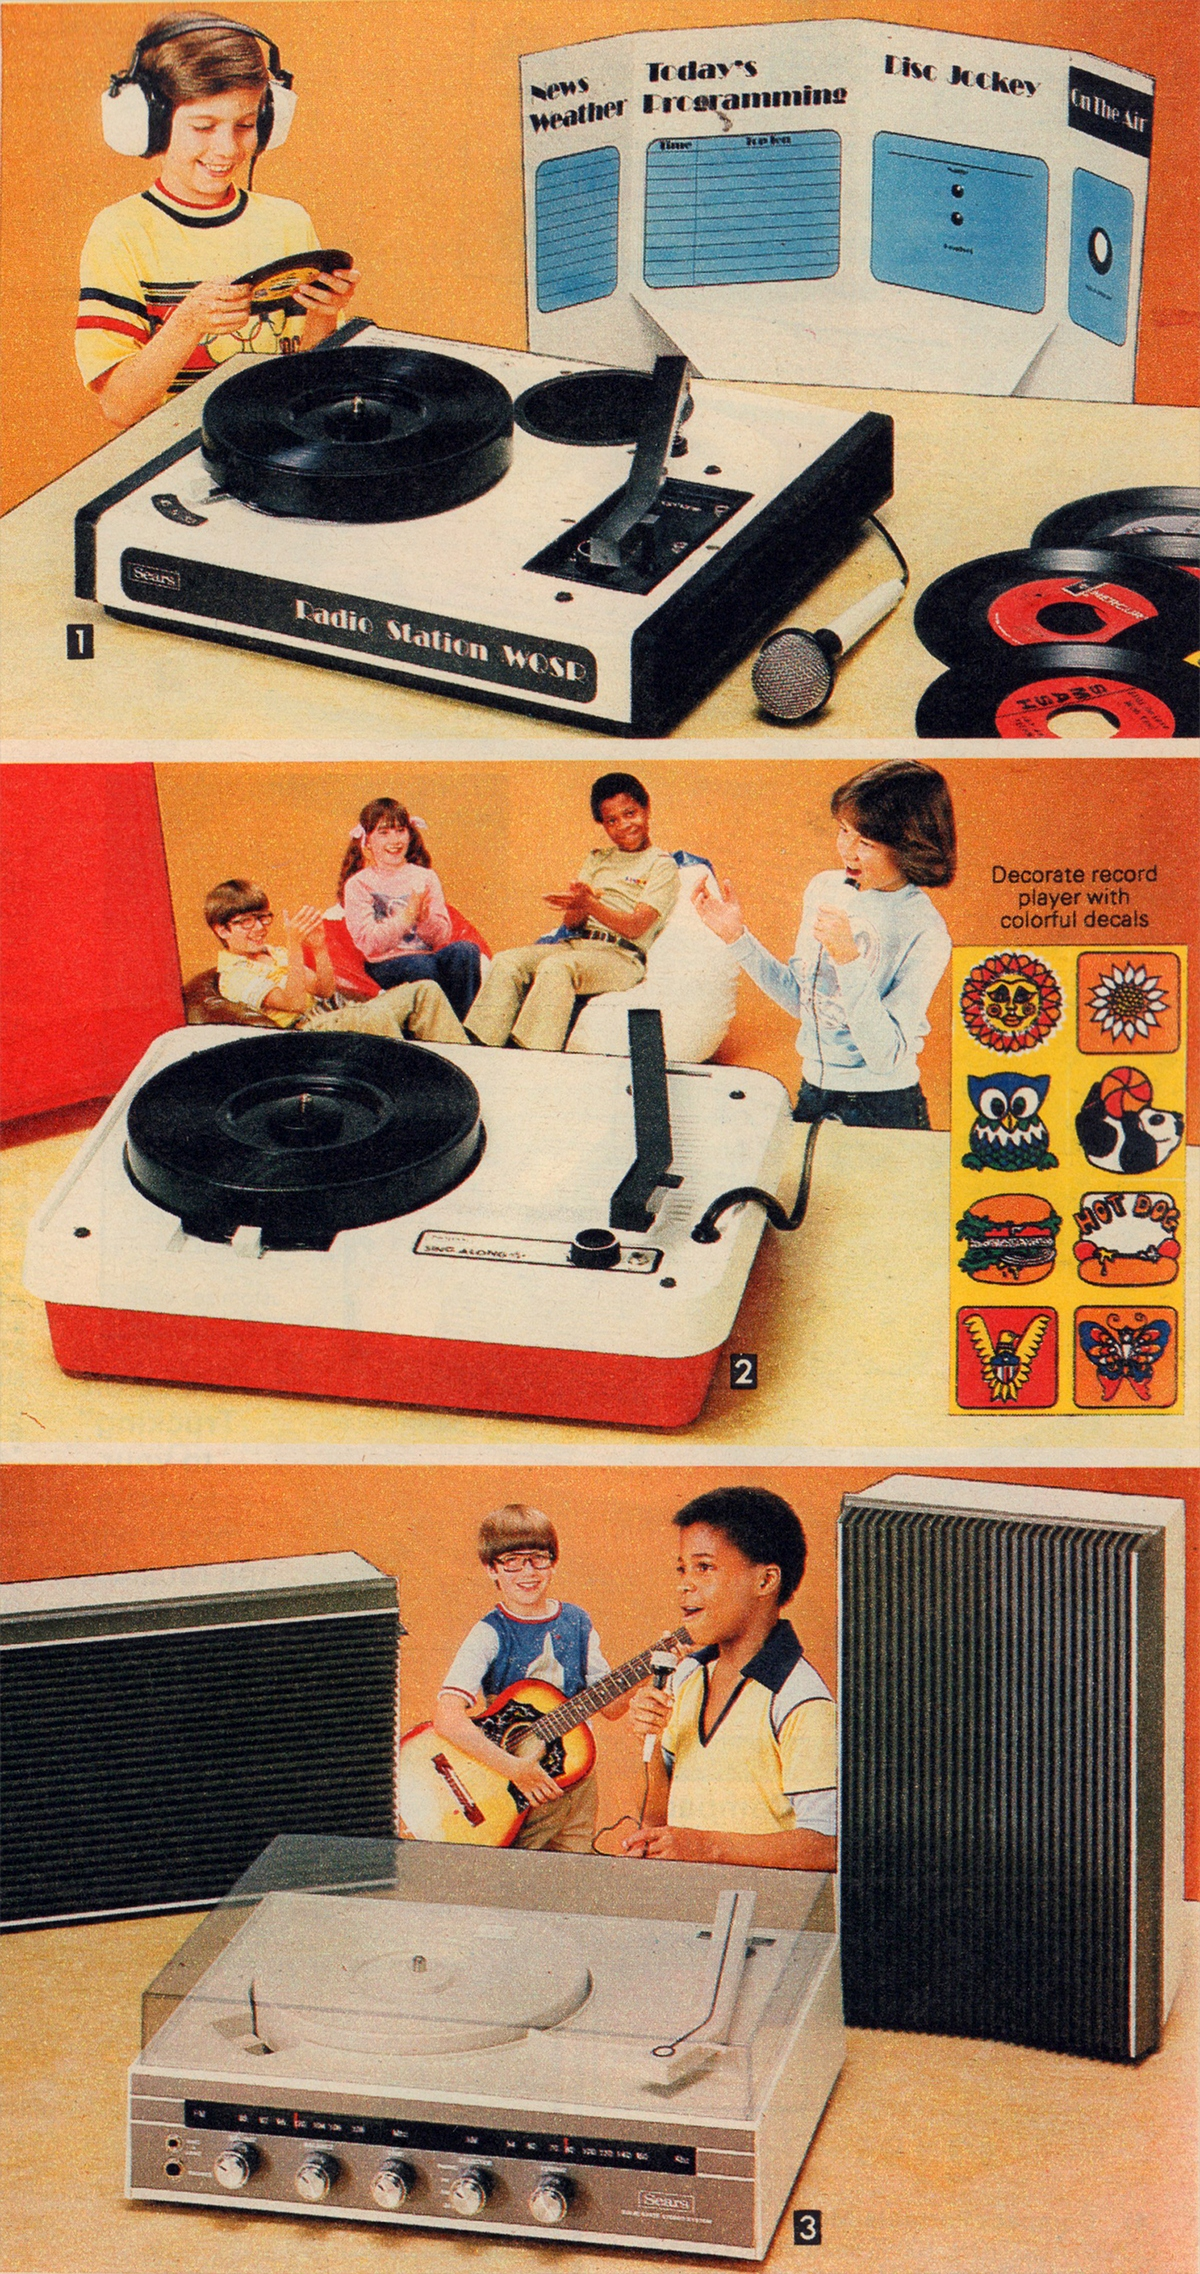 sears-catalog-1979-record-players.jpg